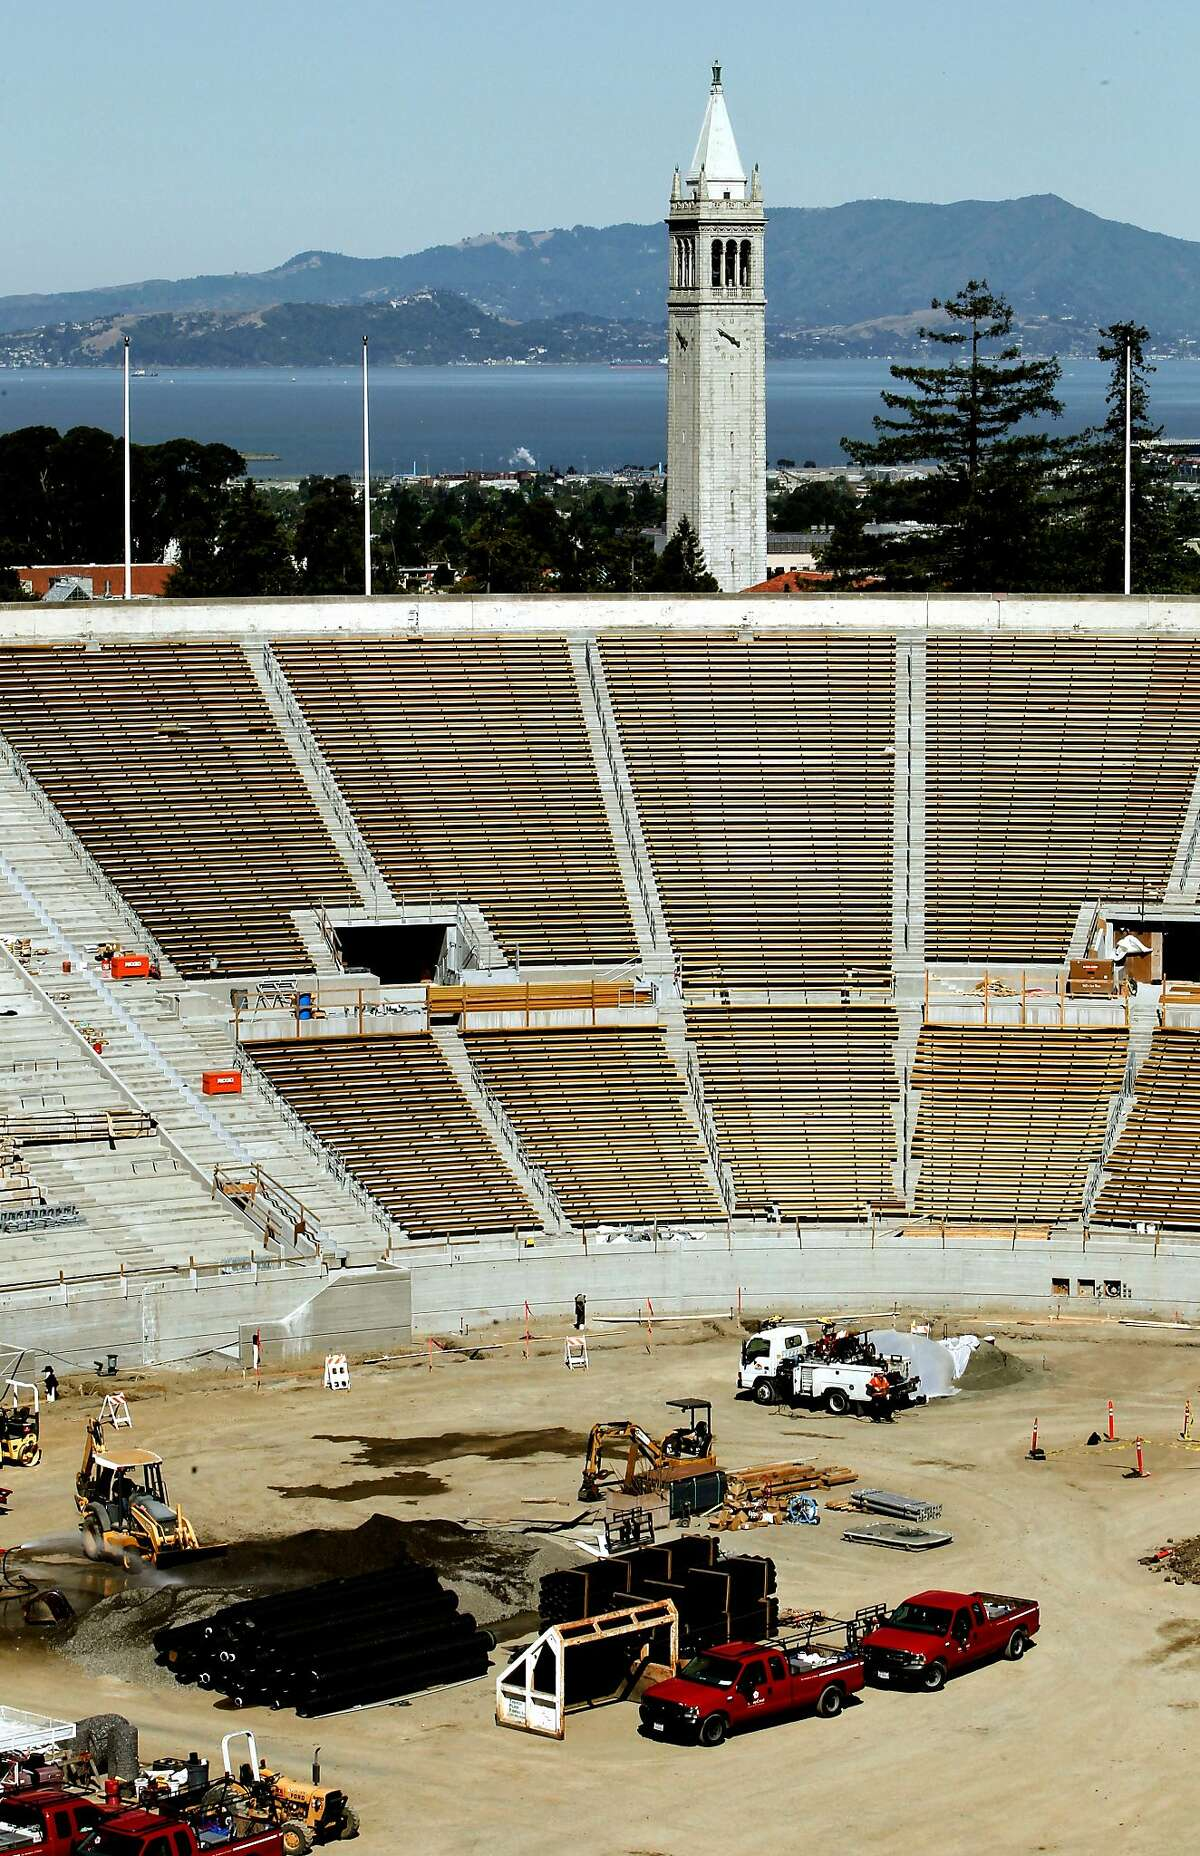 Construction crews were putting the finishing touches on the seismic retrofitting and renova tion of UC Berkeley's Memorial Stadium in 2012. The stadium today carries a $314 million debt.